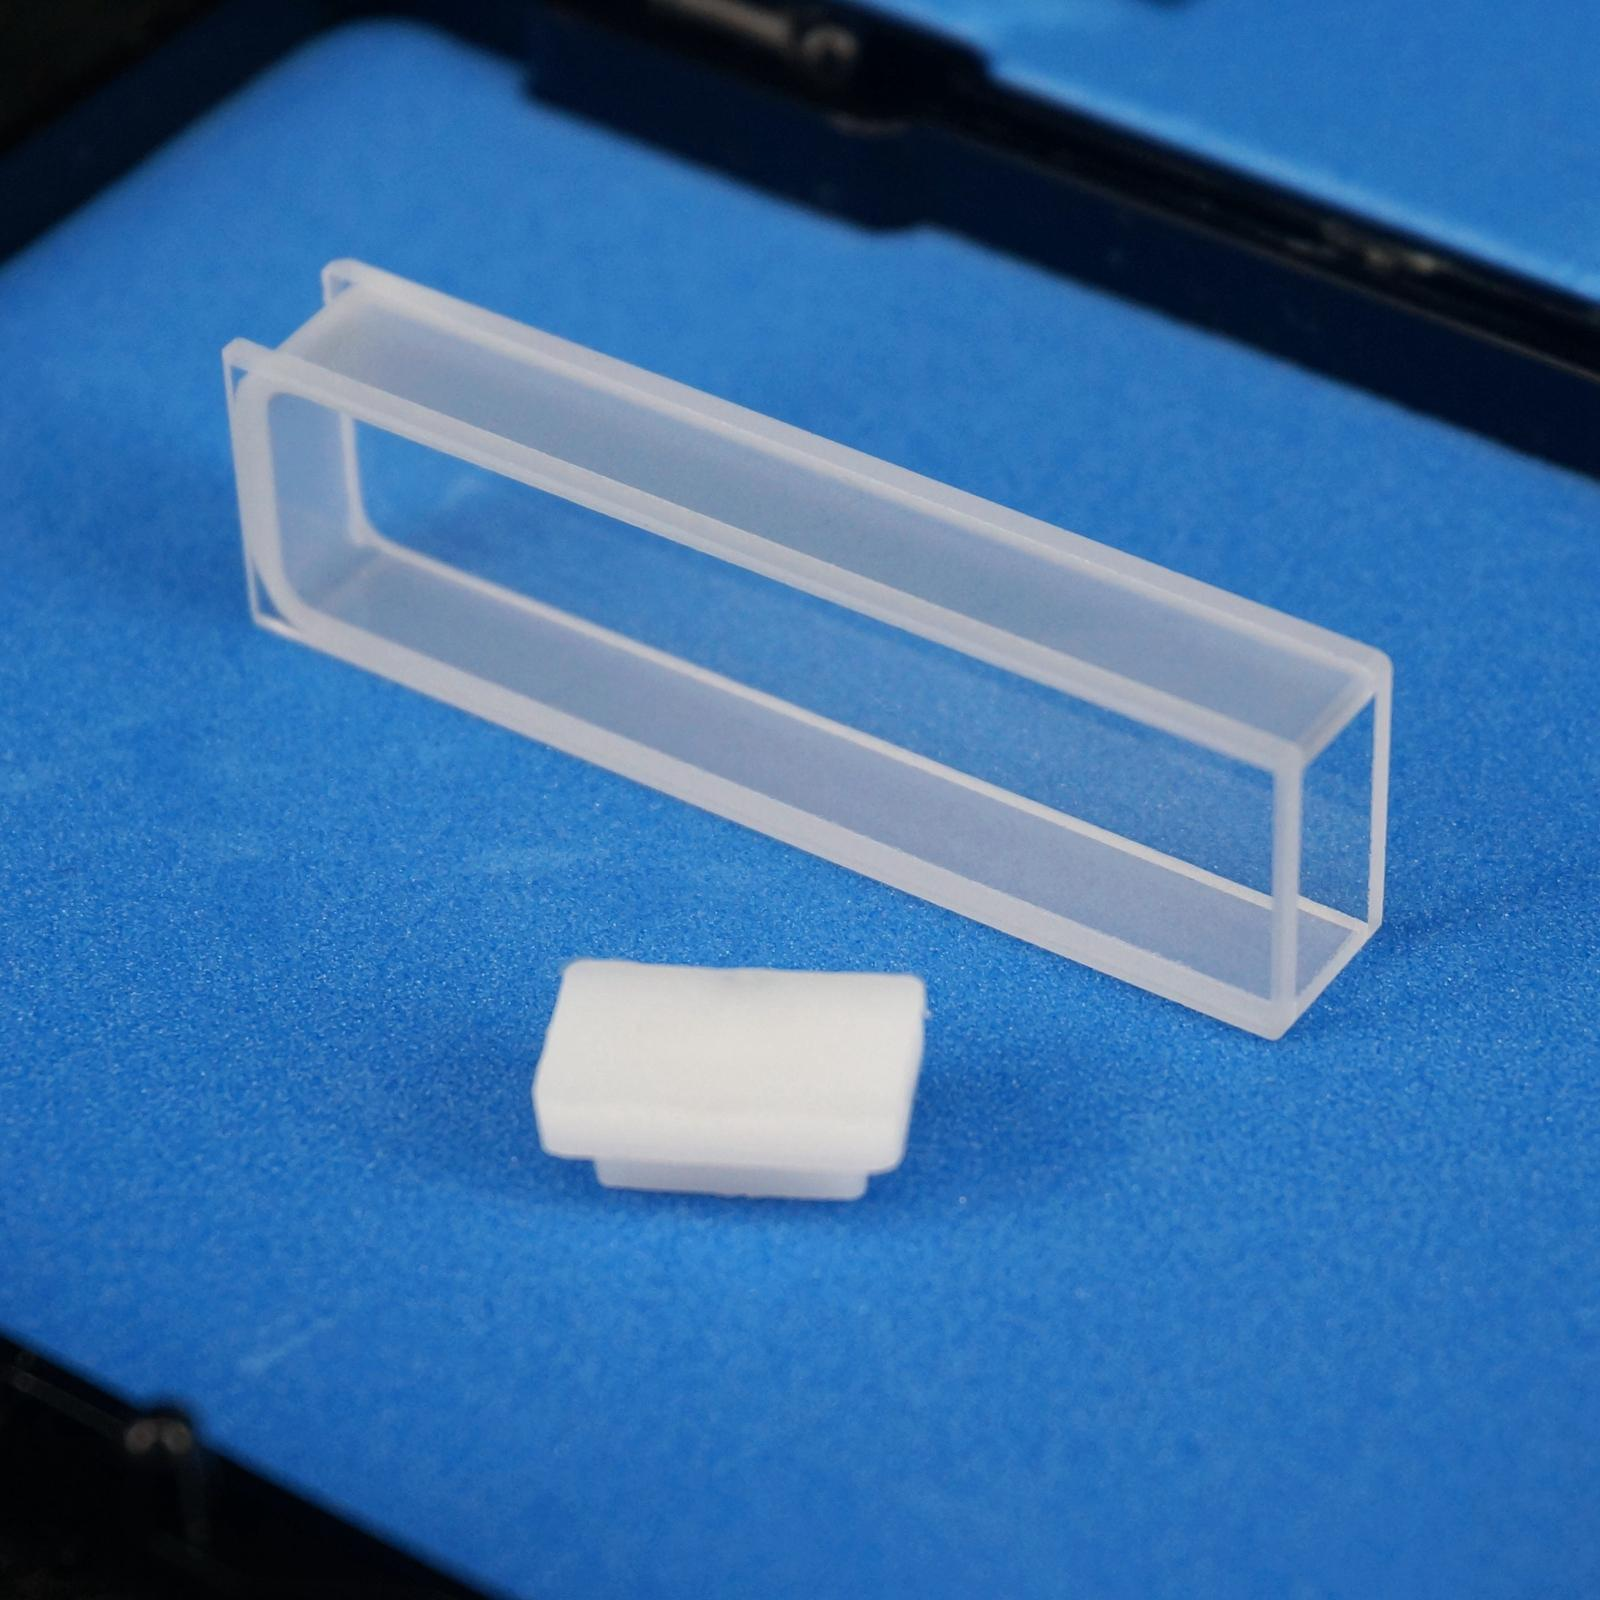 5mm Path Length JGS1 Quartz Cuvette Cell With Telfon Lid For Uv Spectrophotometers